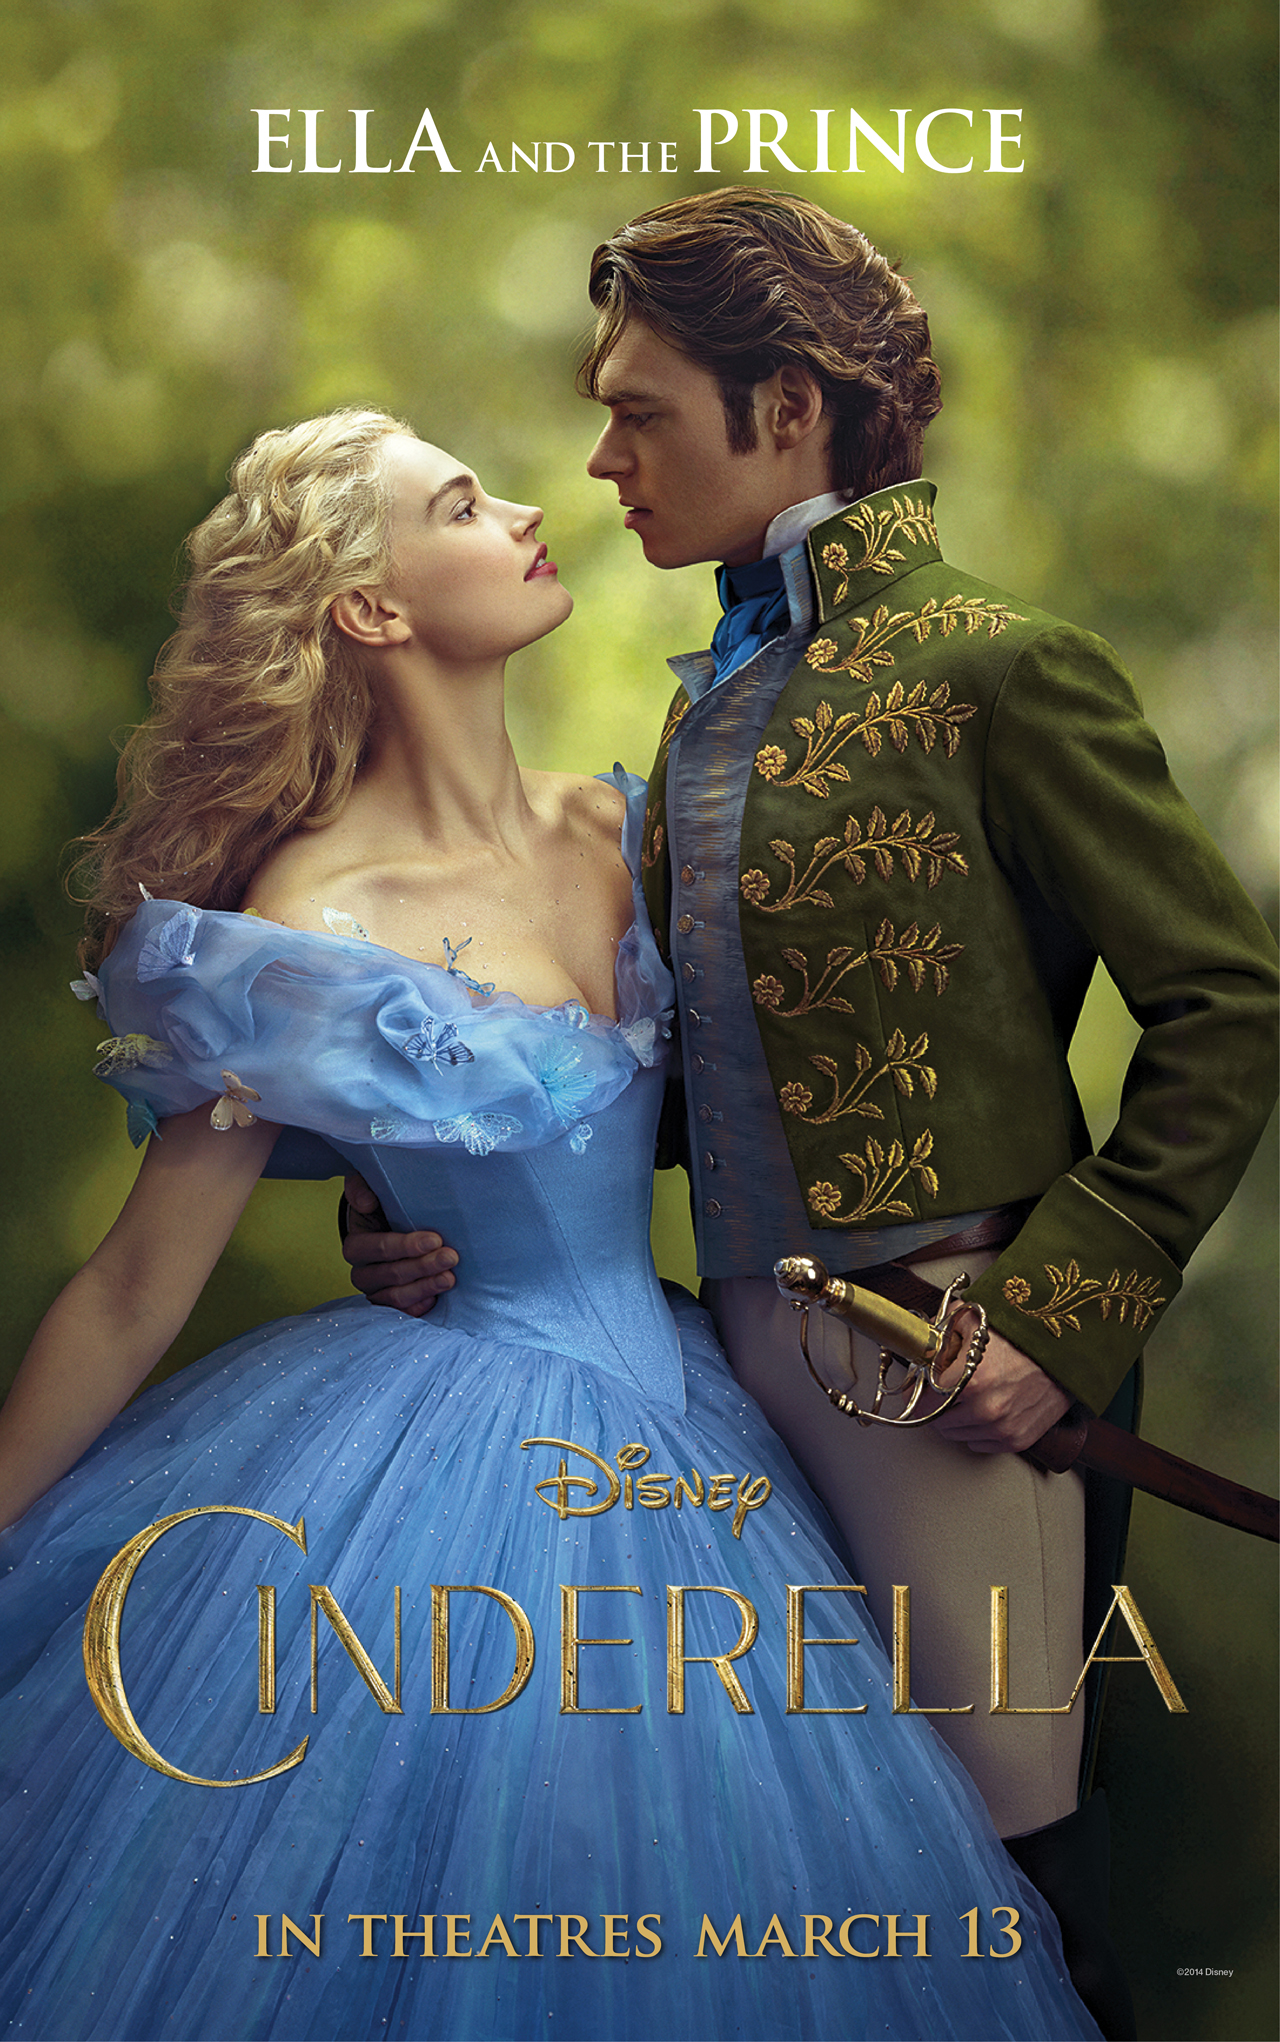 """Cinderella"" 2015 theatrical teaser poster featuring Ella and the Prince."